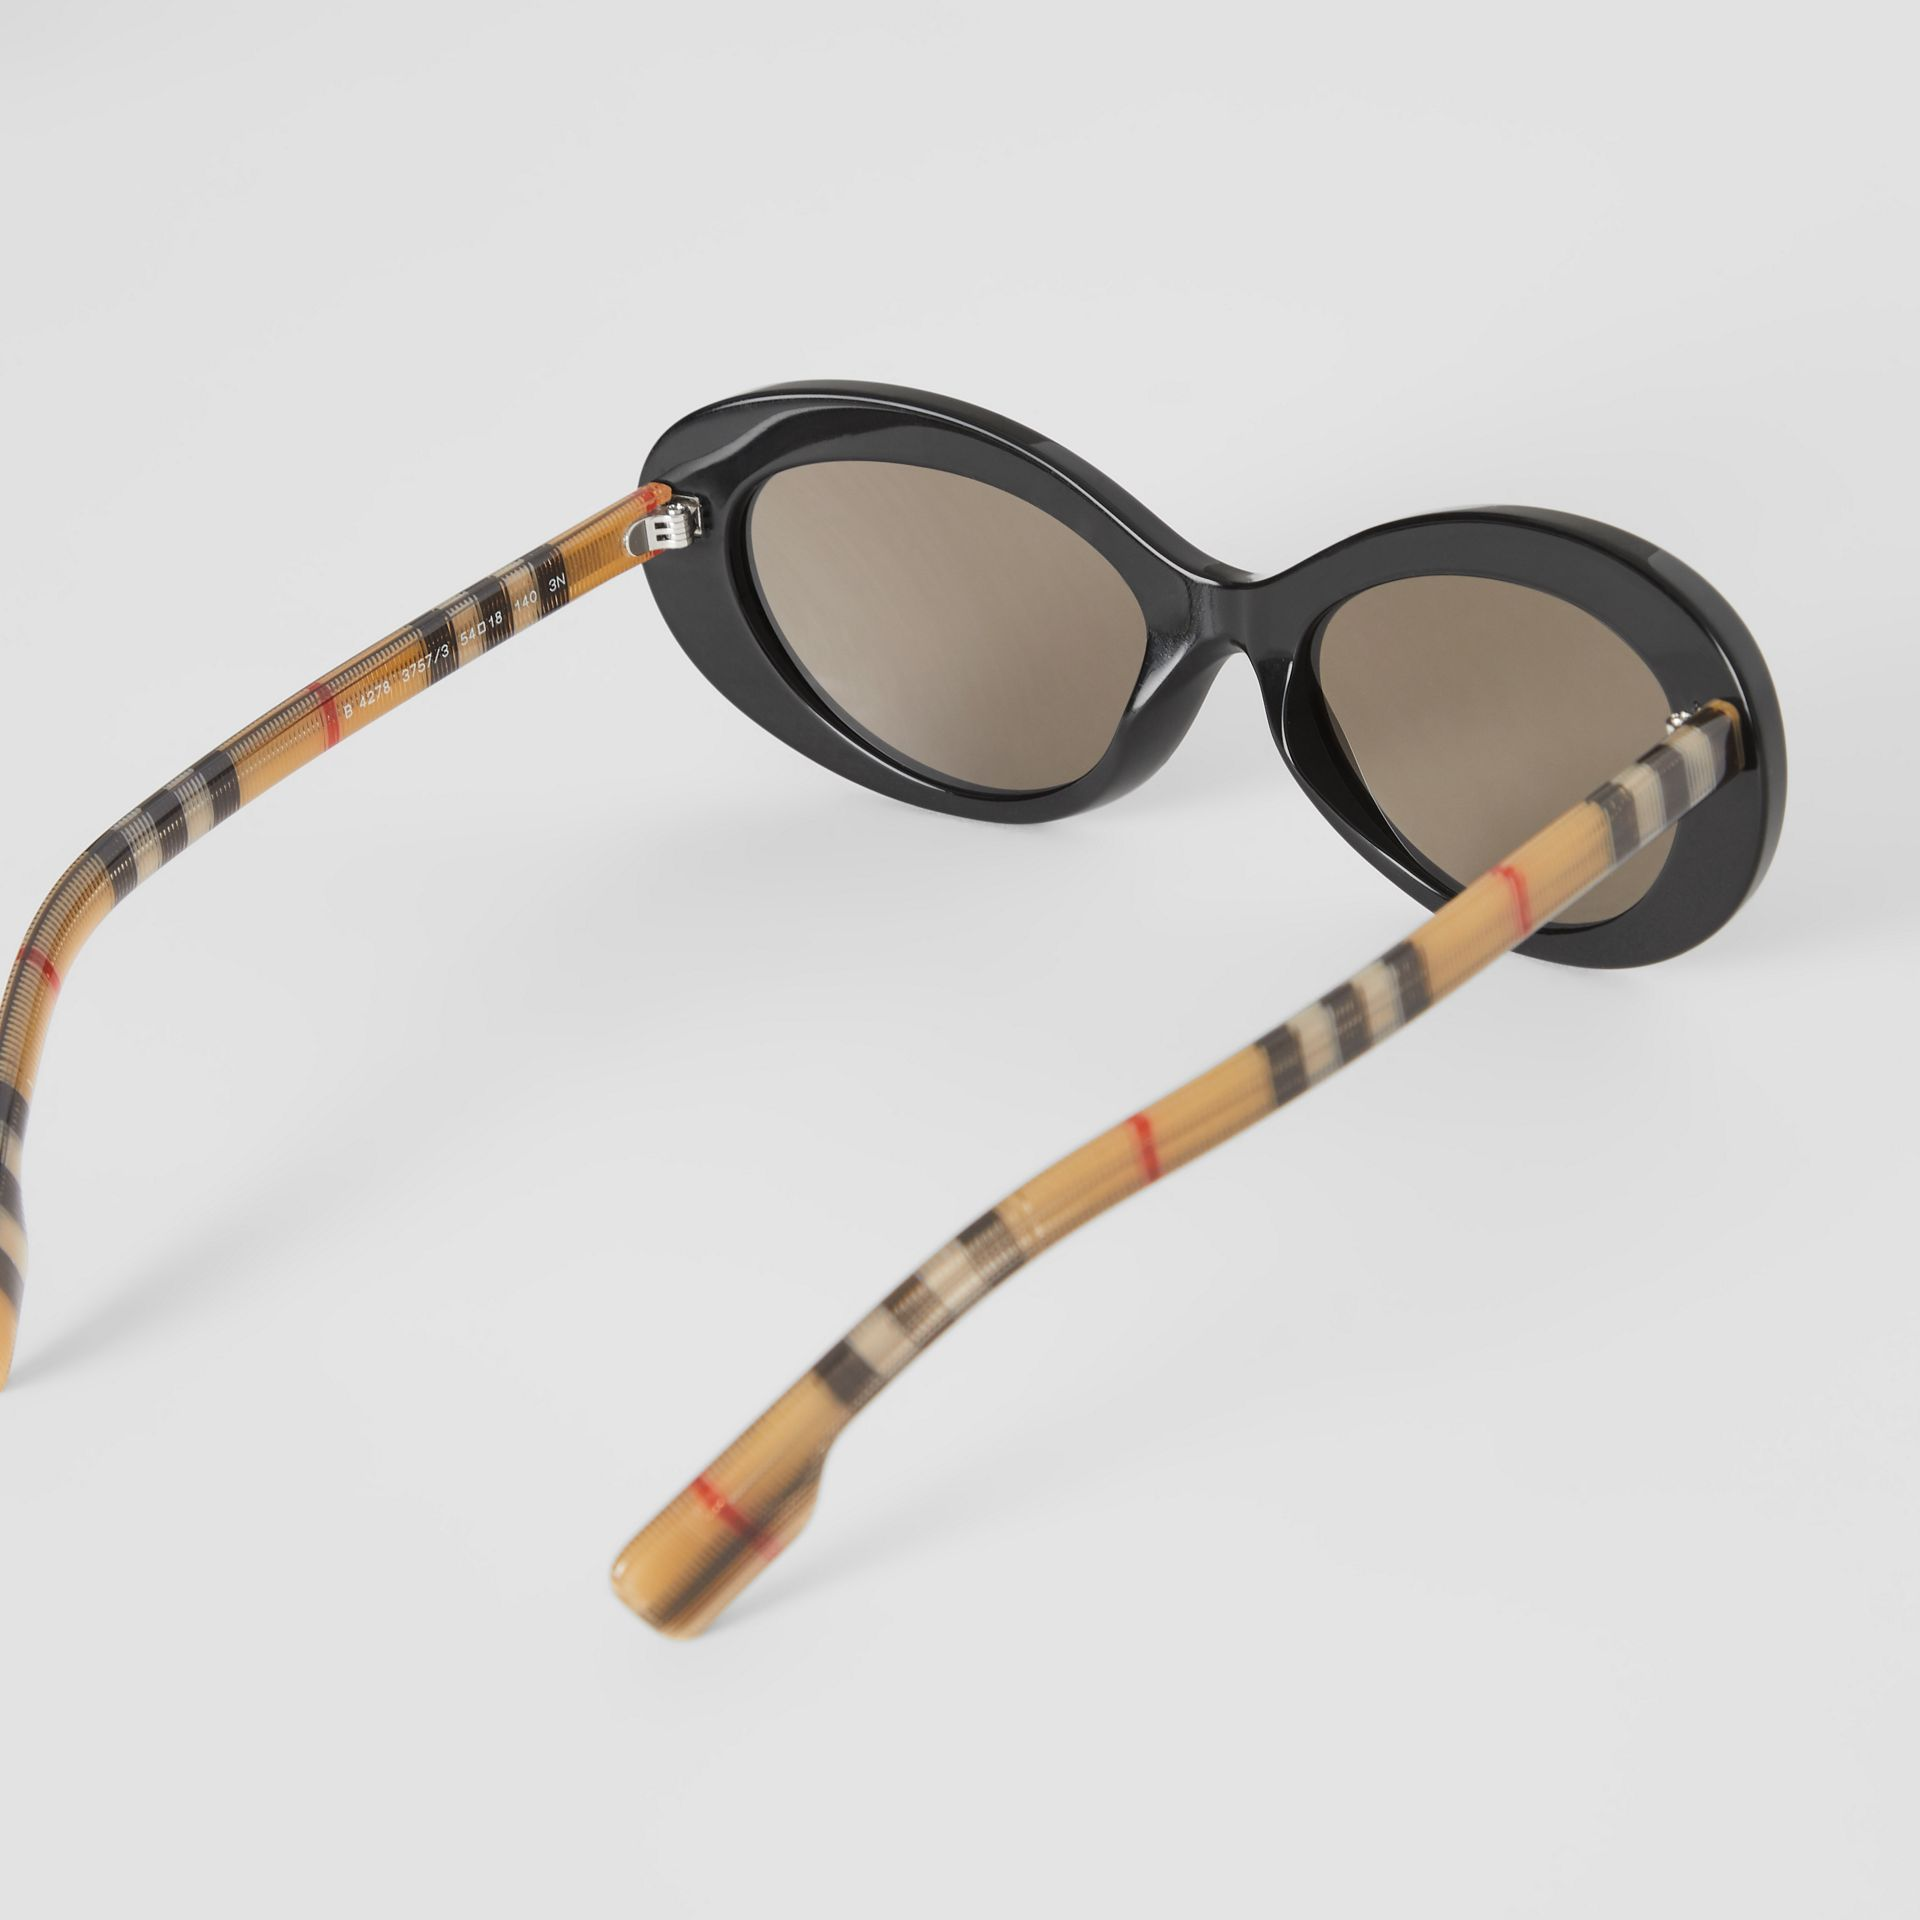 Vintage Check Detail Cat-eye Frame Sunglasses in Black - Women | Burberry United Kingdom - gallery image 4